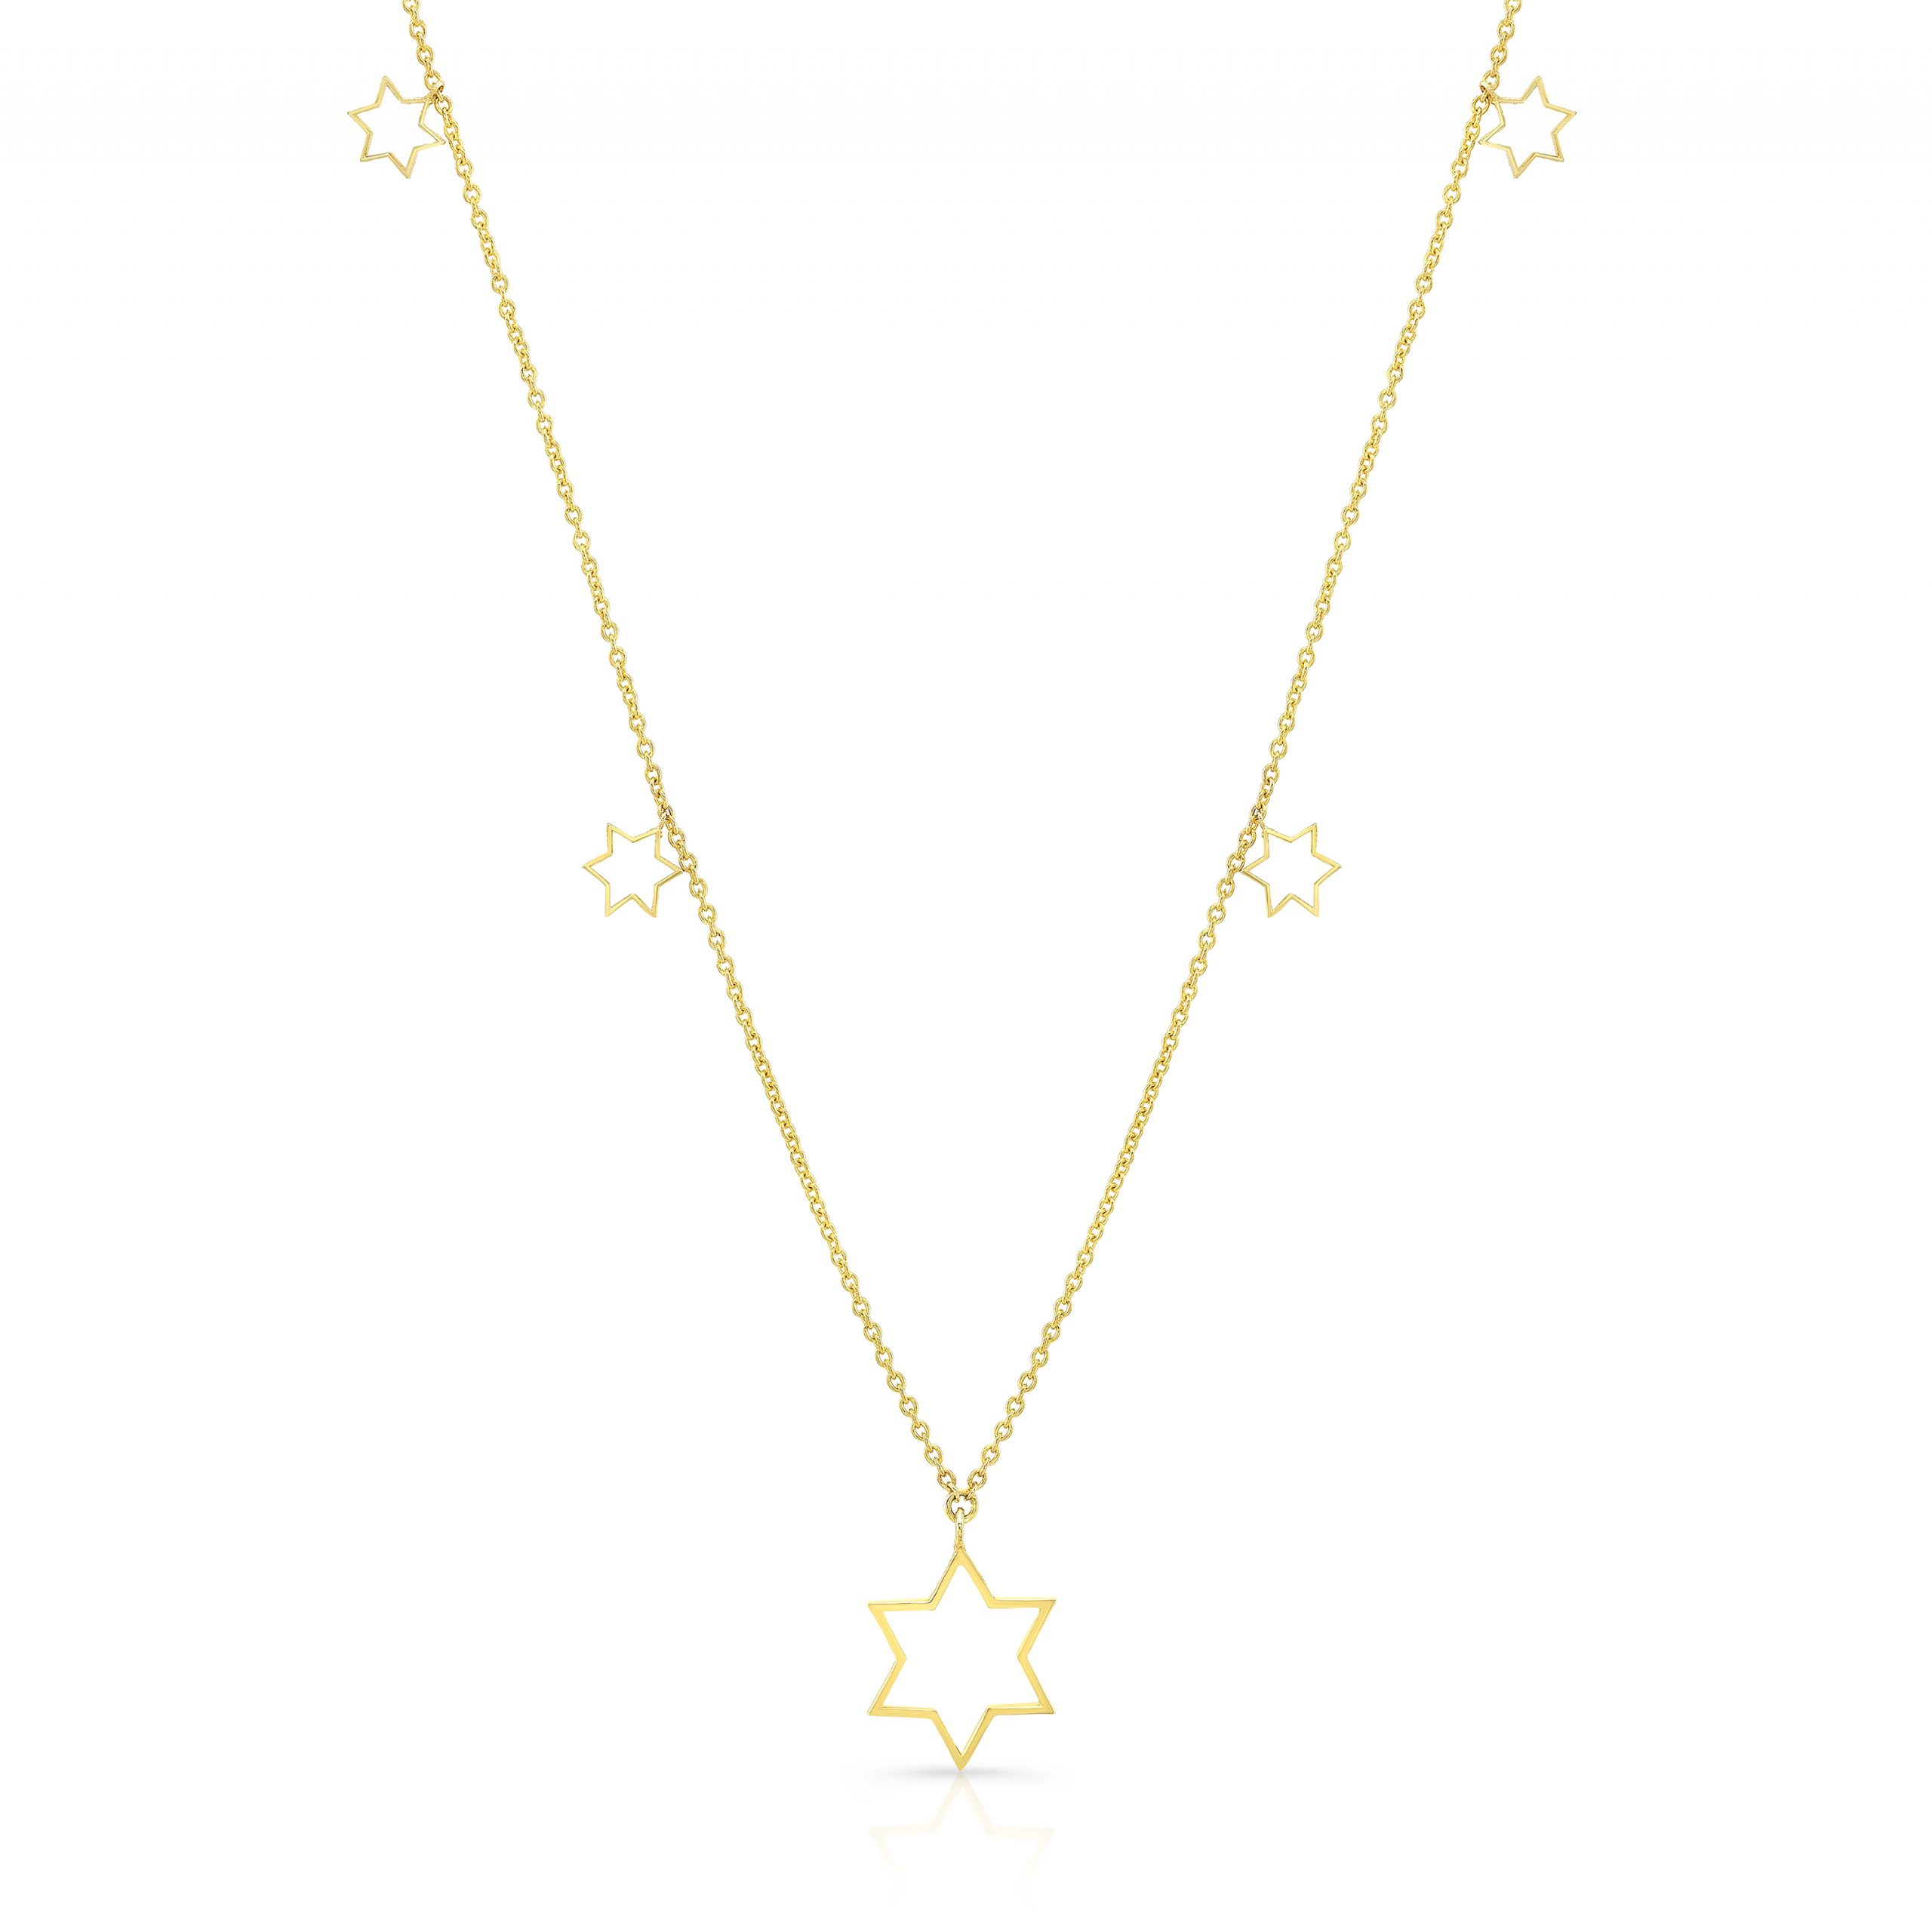 mbjewelers_011221_necklace_with_charms_1